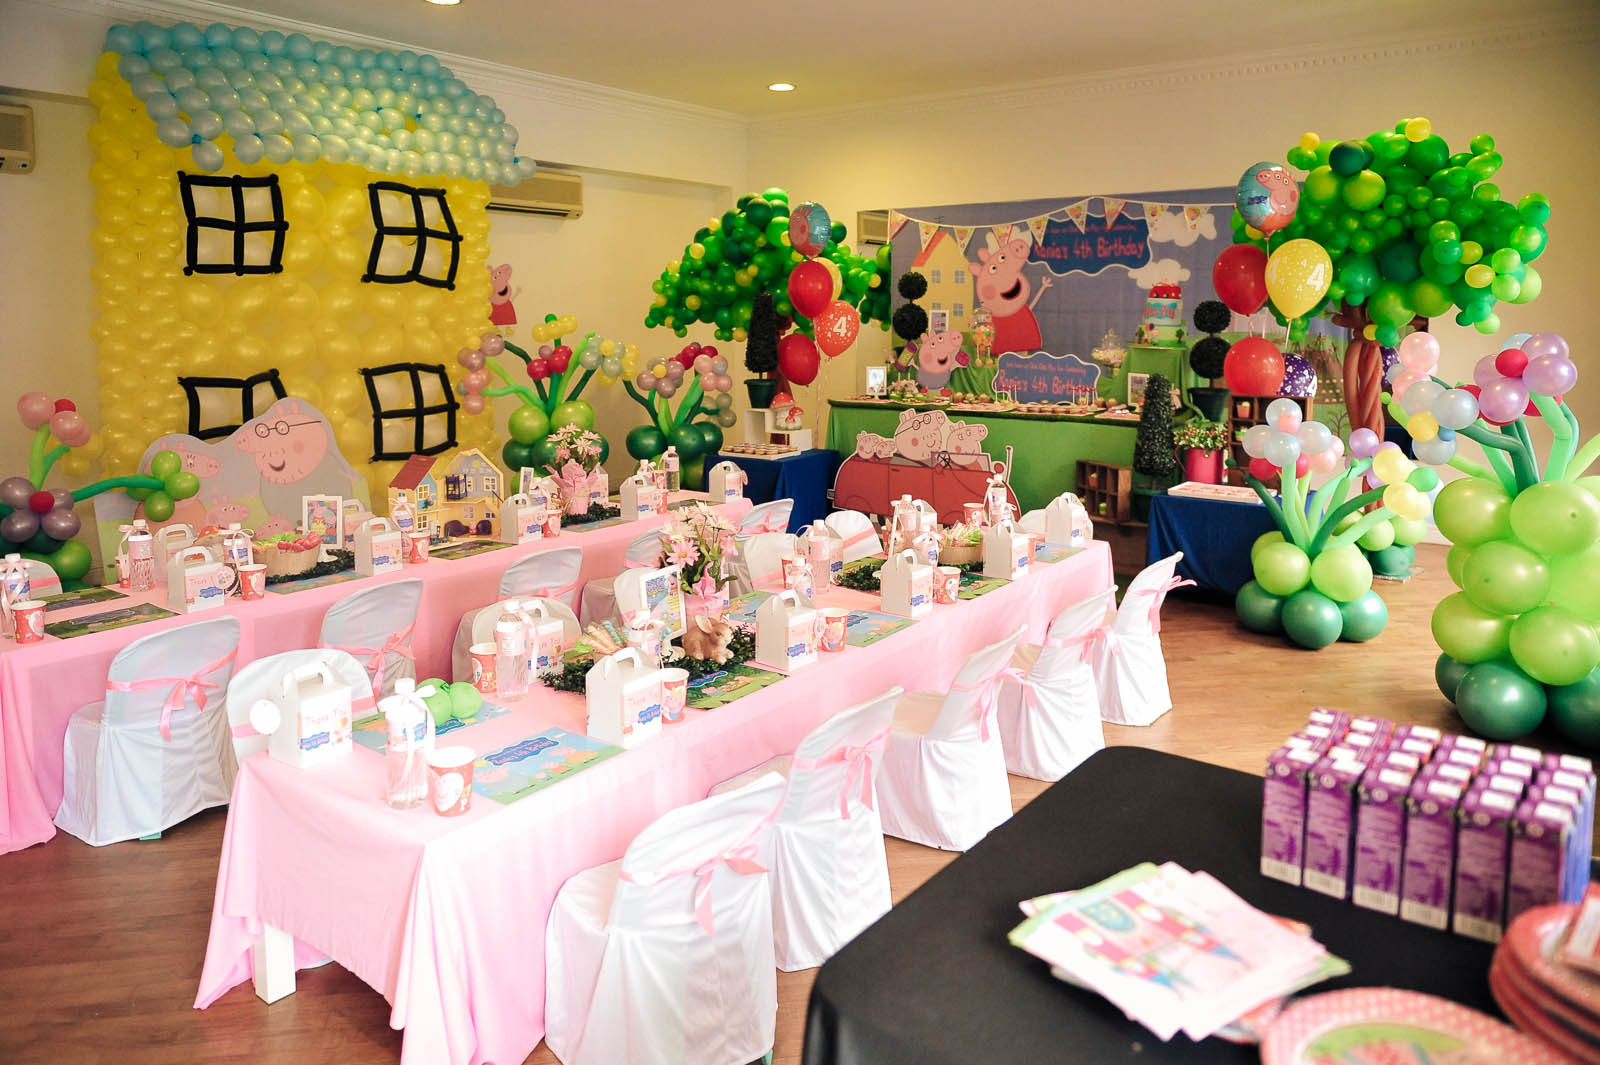 Best ideas about Peppa Pig Birthday Party Decorations . Save or Pin Sandy Party Decorations Now.